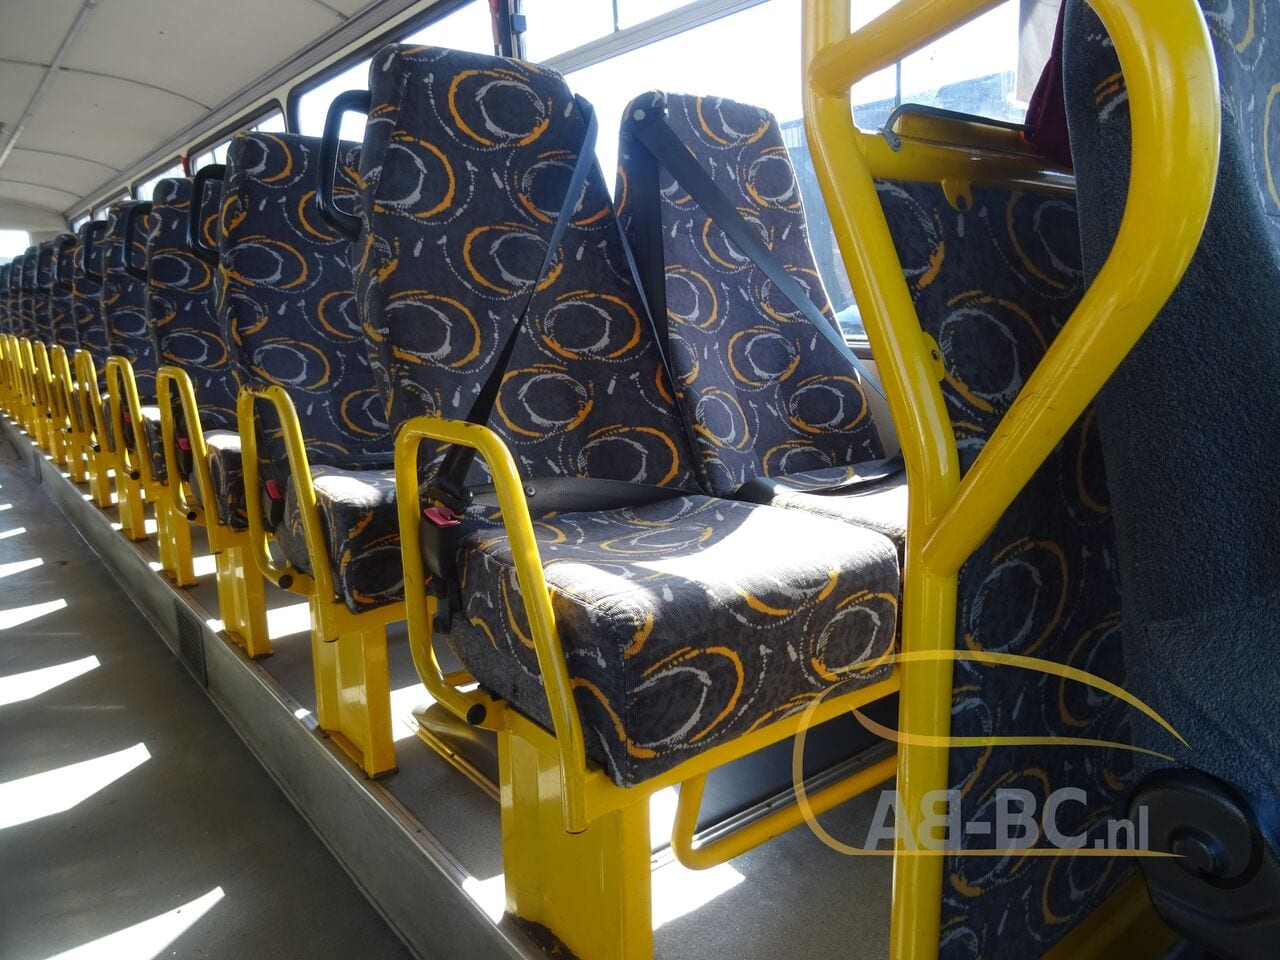 interurban-busIVECO-Irisbus-Recreo-59-Seats---1619430832004755211_big_8b255f95db6187d1d7bf2182e45f0583--21042612454255740900